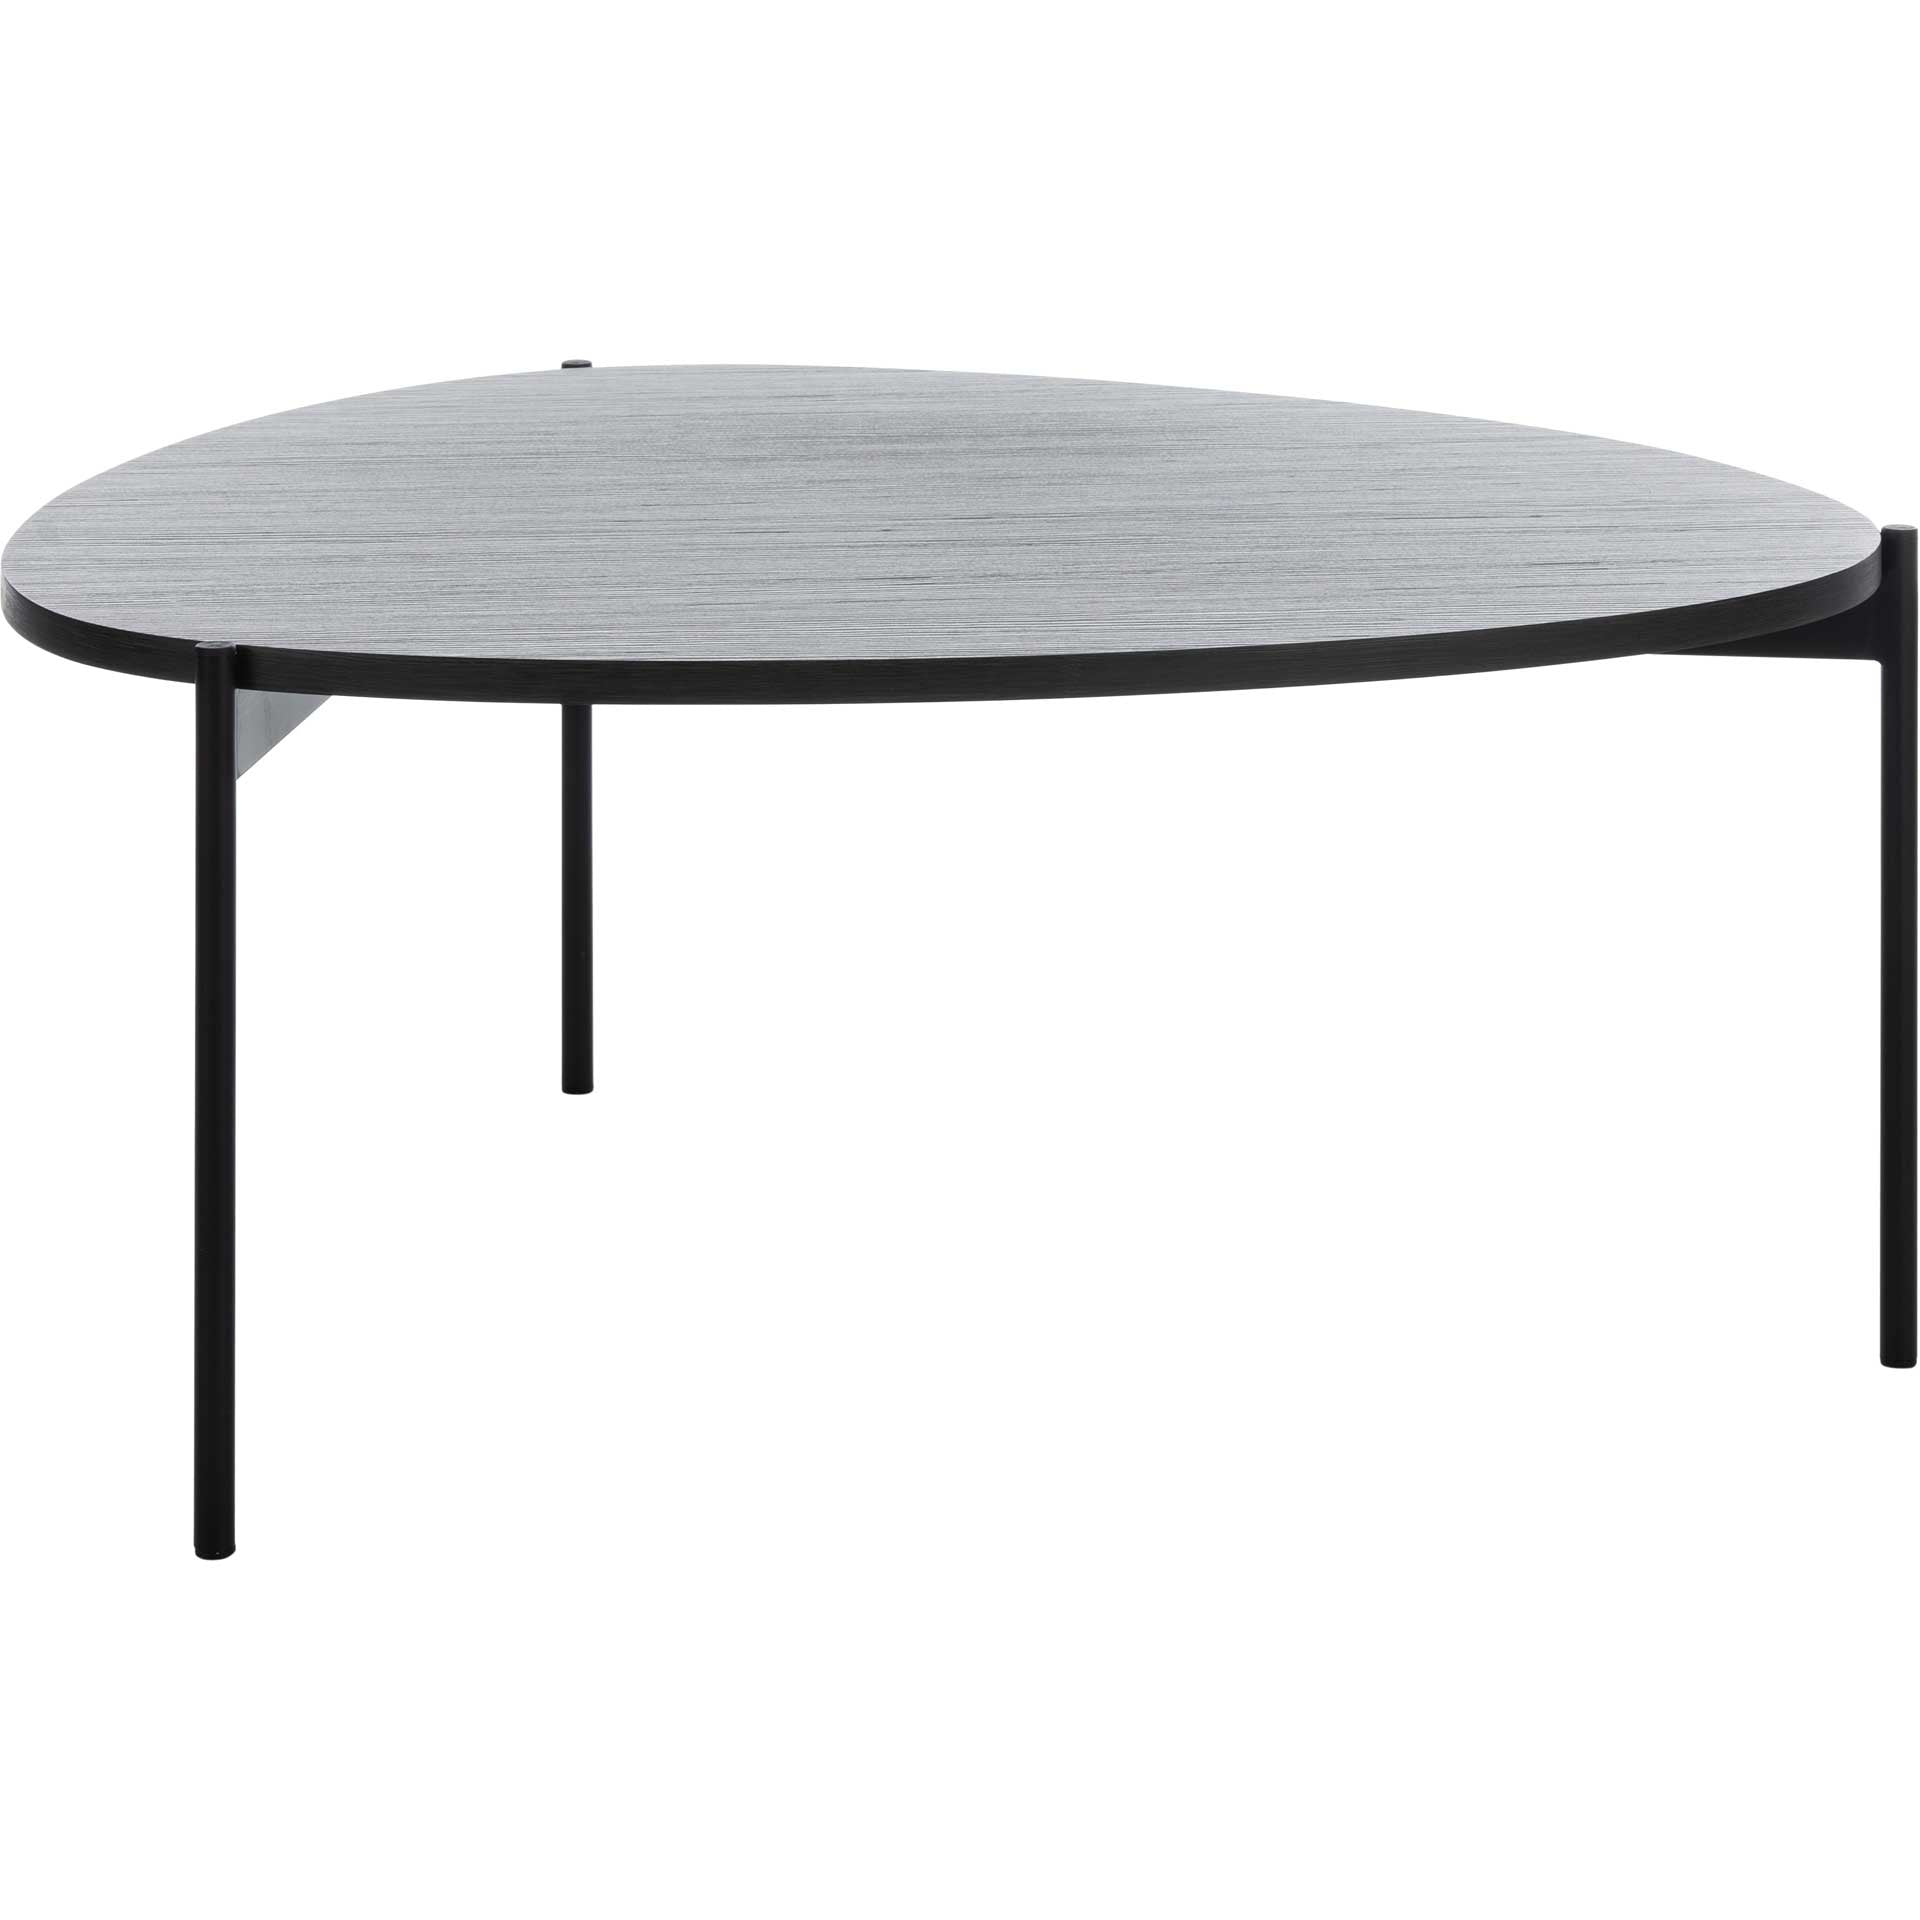 Svaha Coffee Table Dark Gray Oak/Black